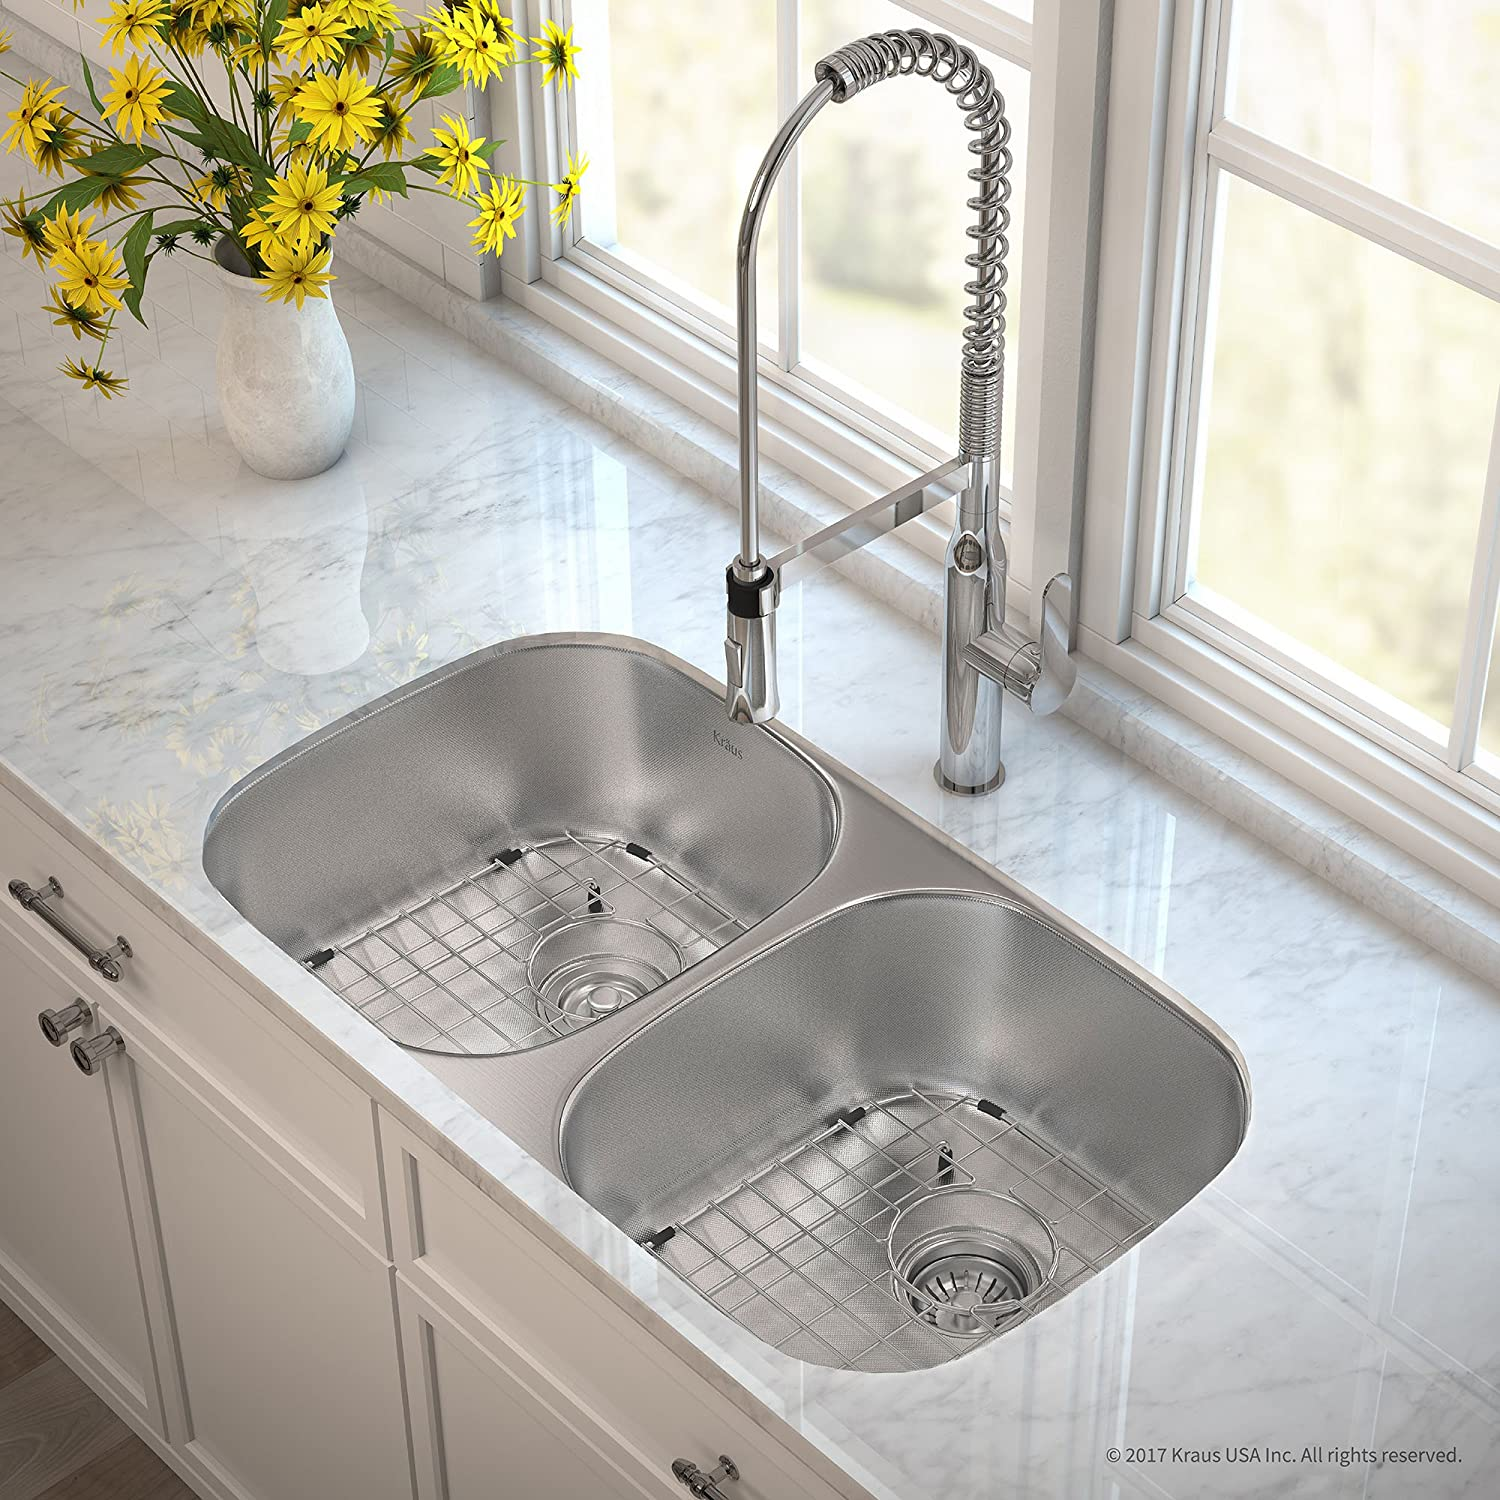 Delicieux Best Stainless Steel Sinks Brand